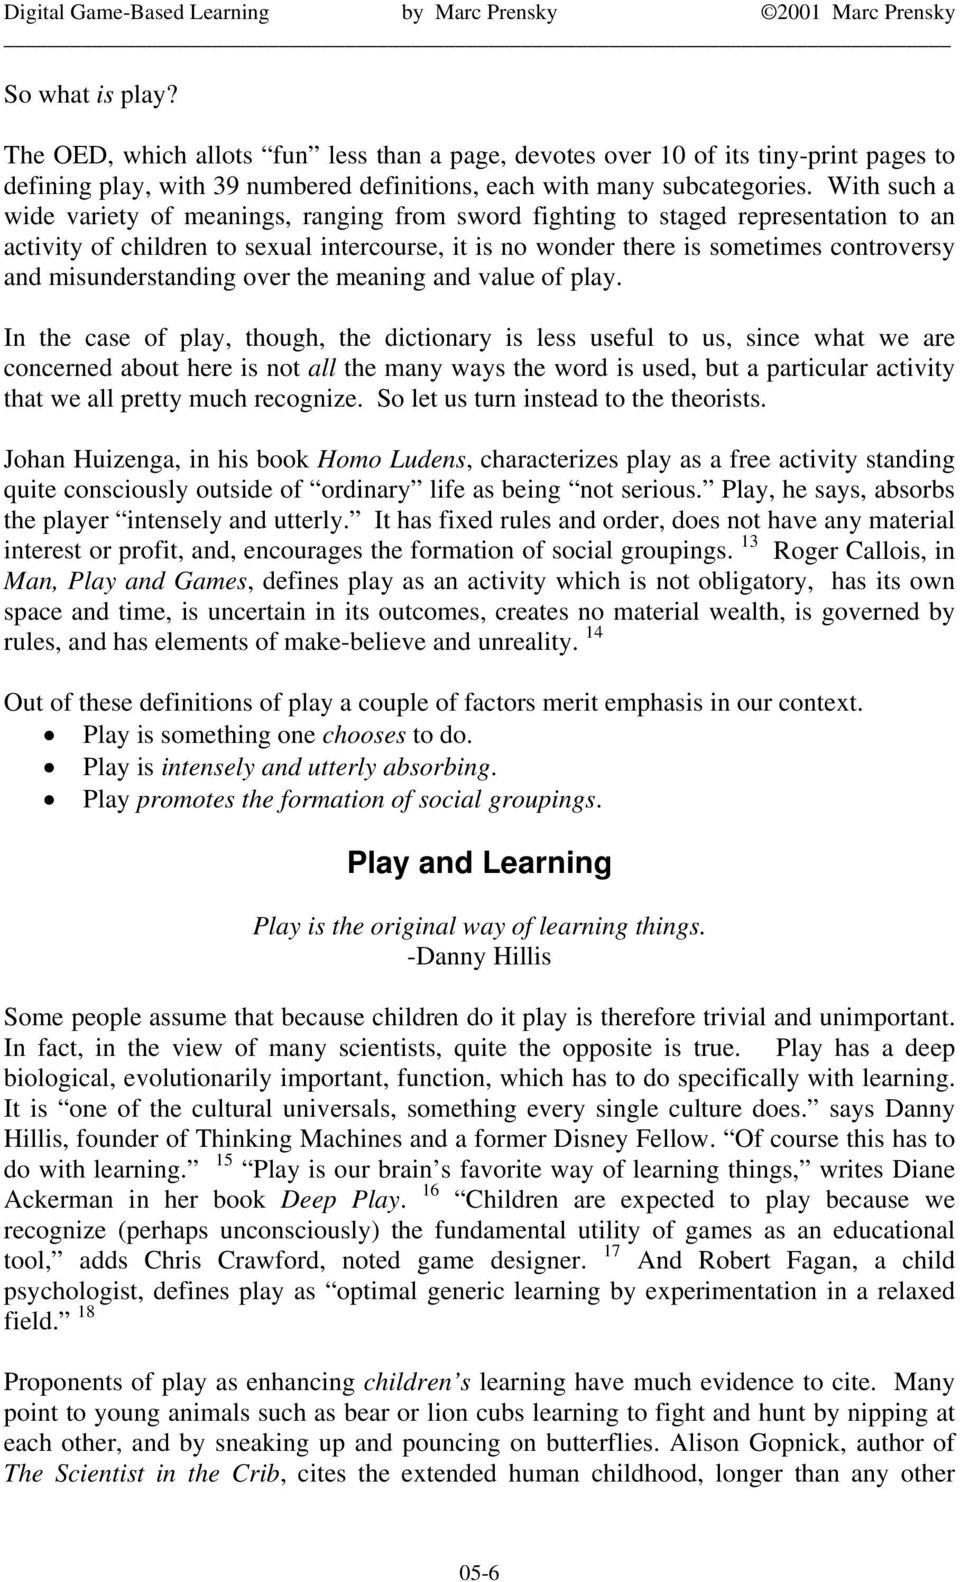 misunderstanding over the meaning and value of play.